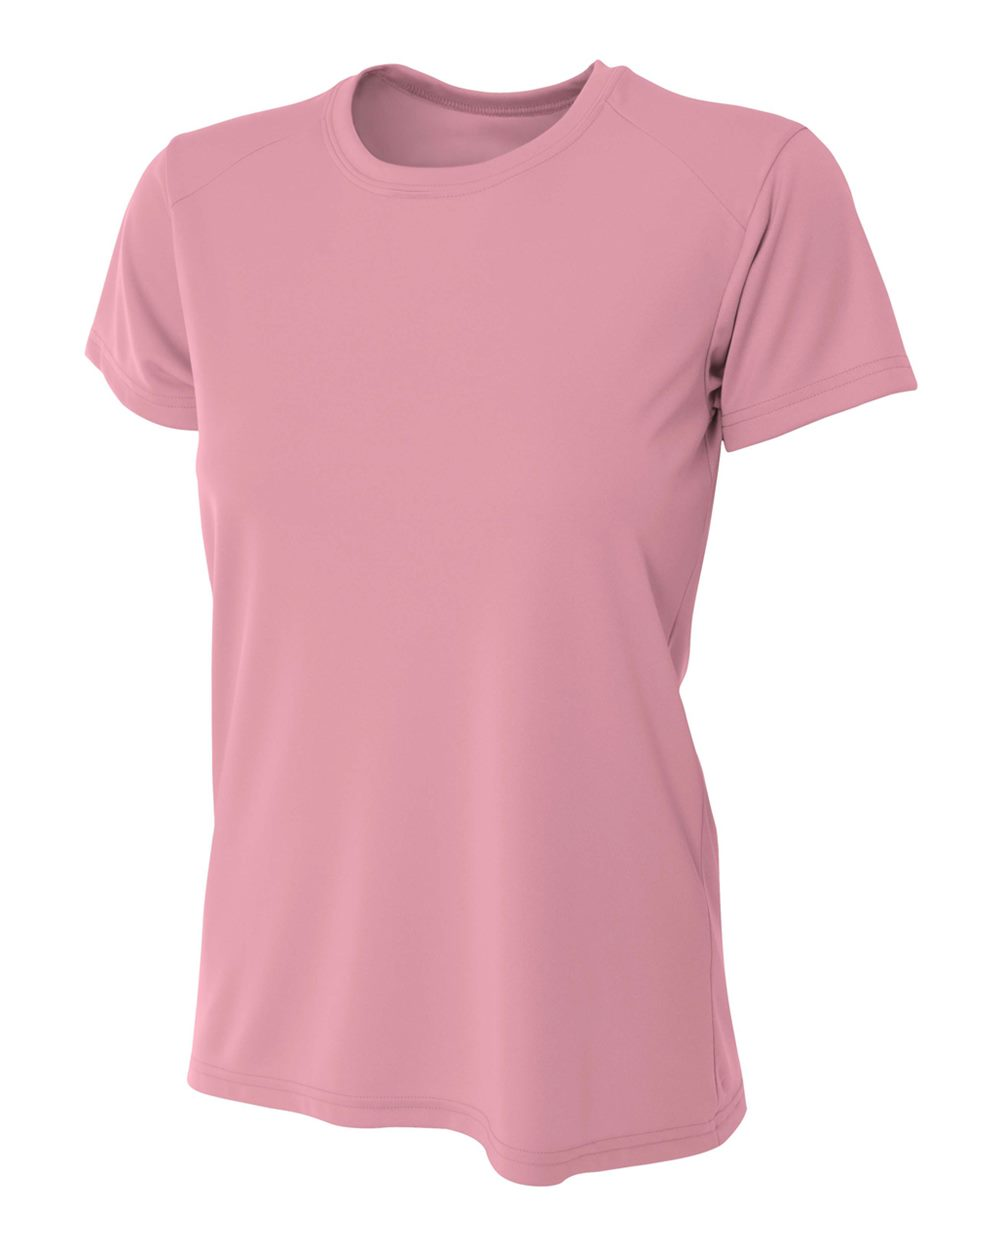 womens-polo-mwicking-pink.jpg